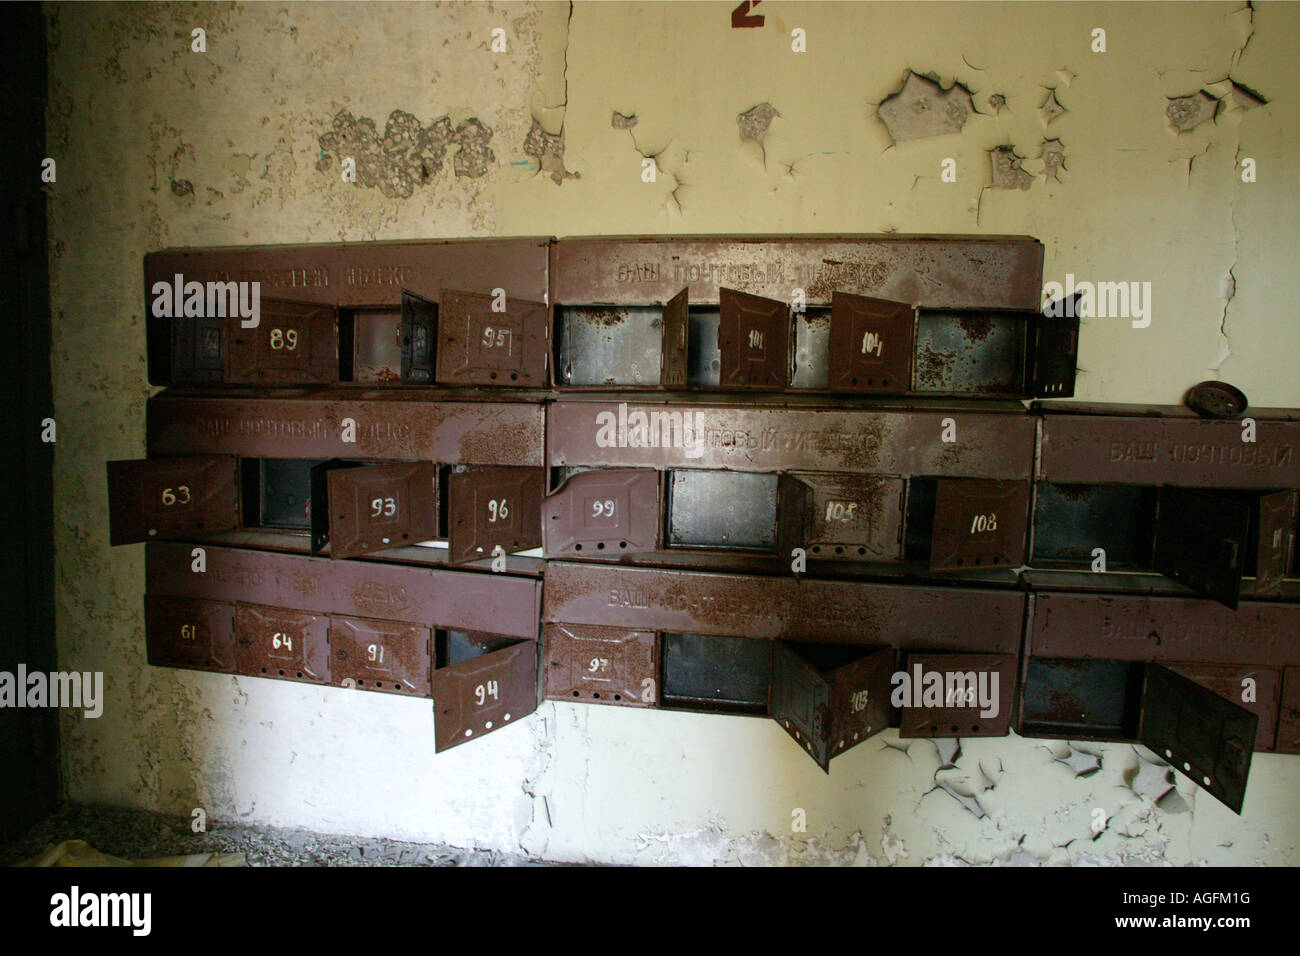 Abandoned apartment buildings Prypiat Chernobyl exclsion zone Ukraine - Stock Image